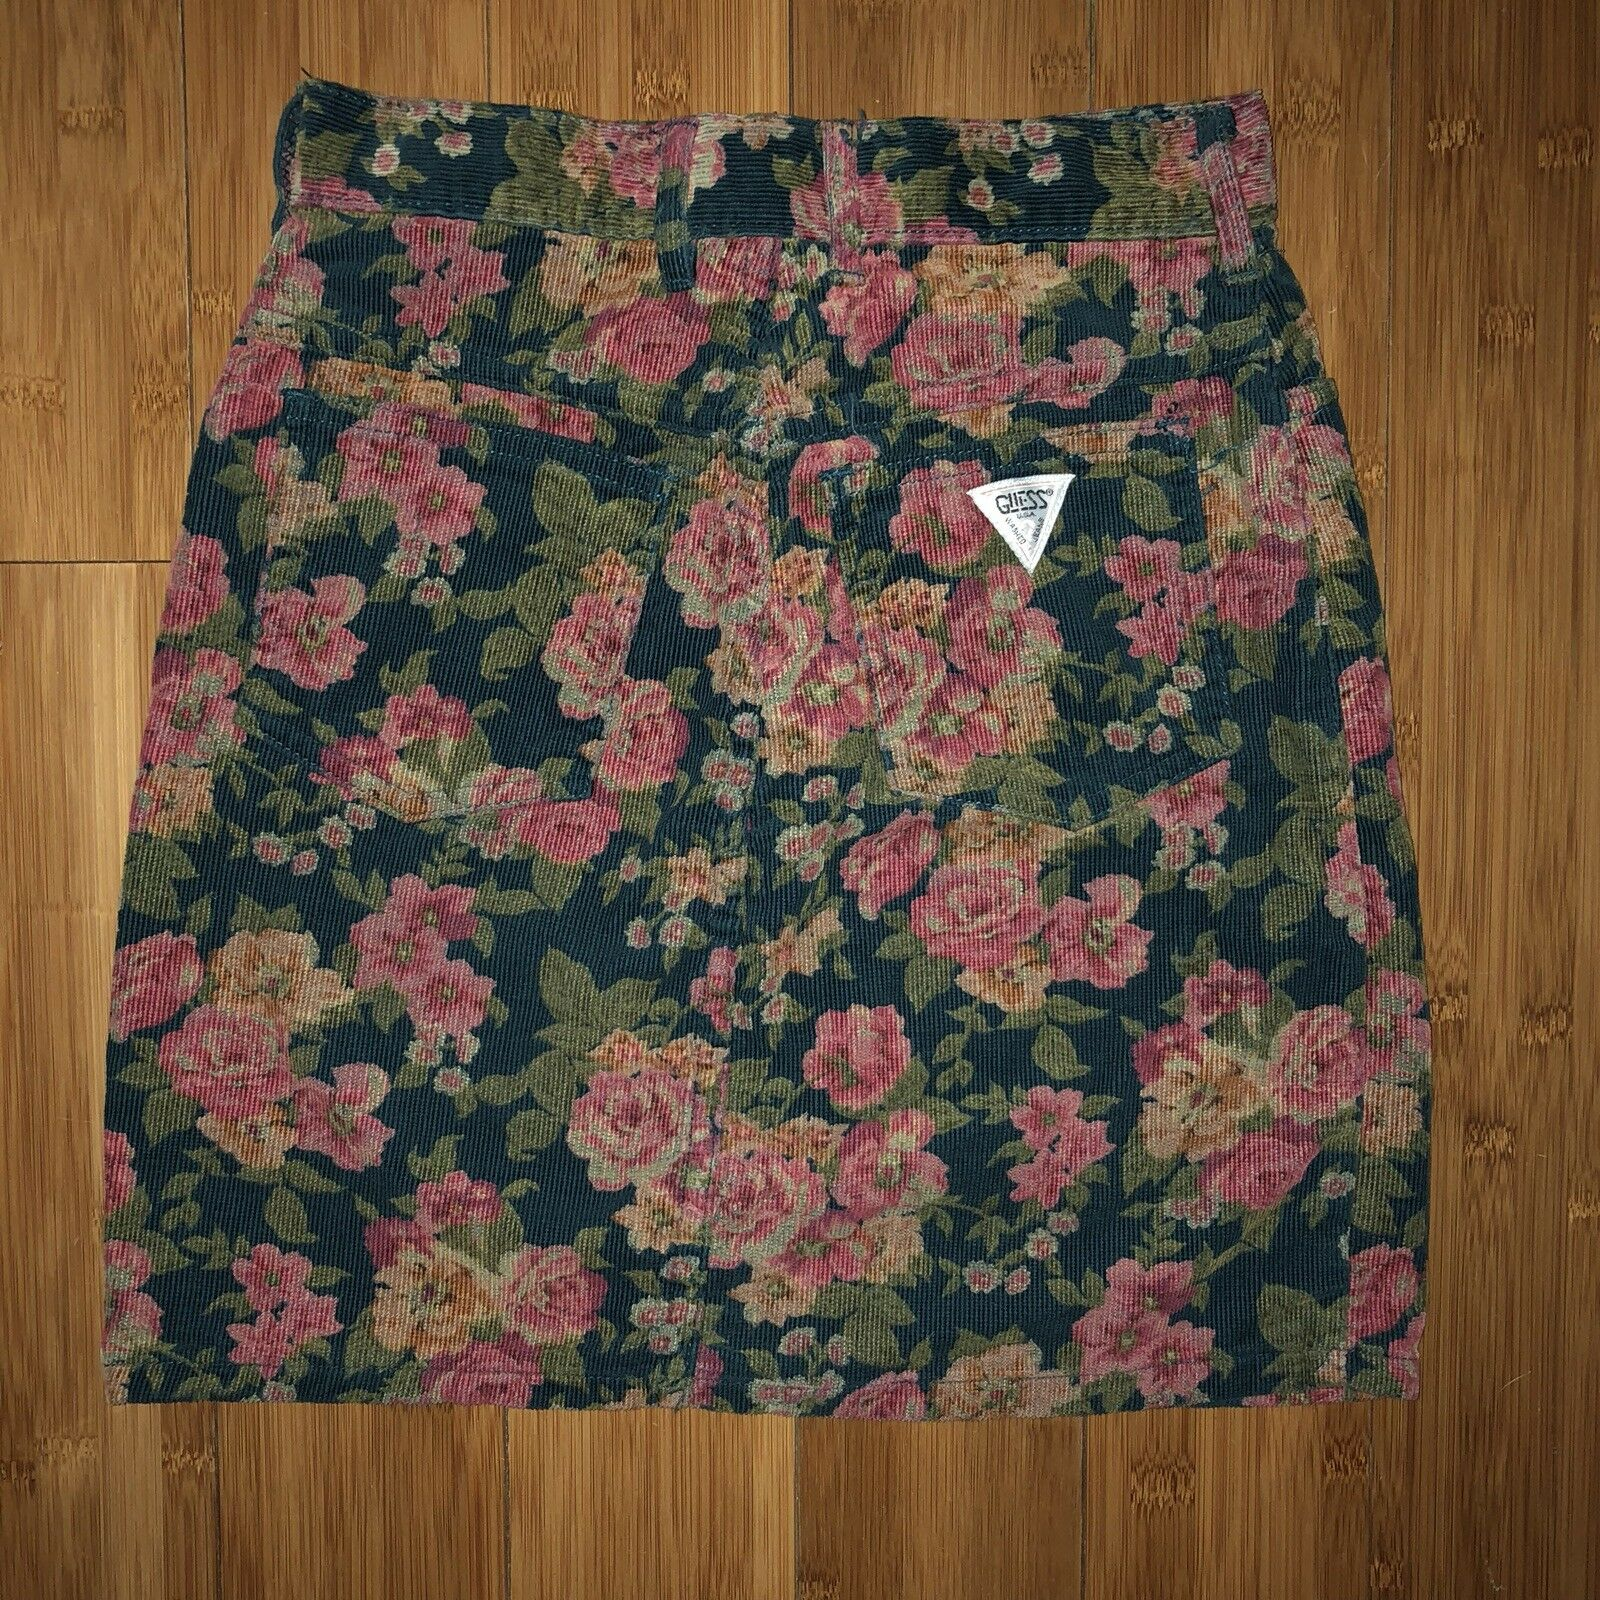 Vintage 80s 90s Guess Products Floral Corduroy Skirt Made In USA RARE Marciano